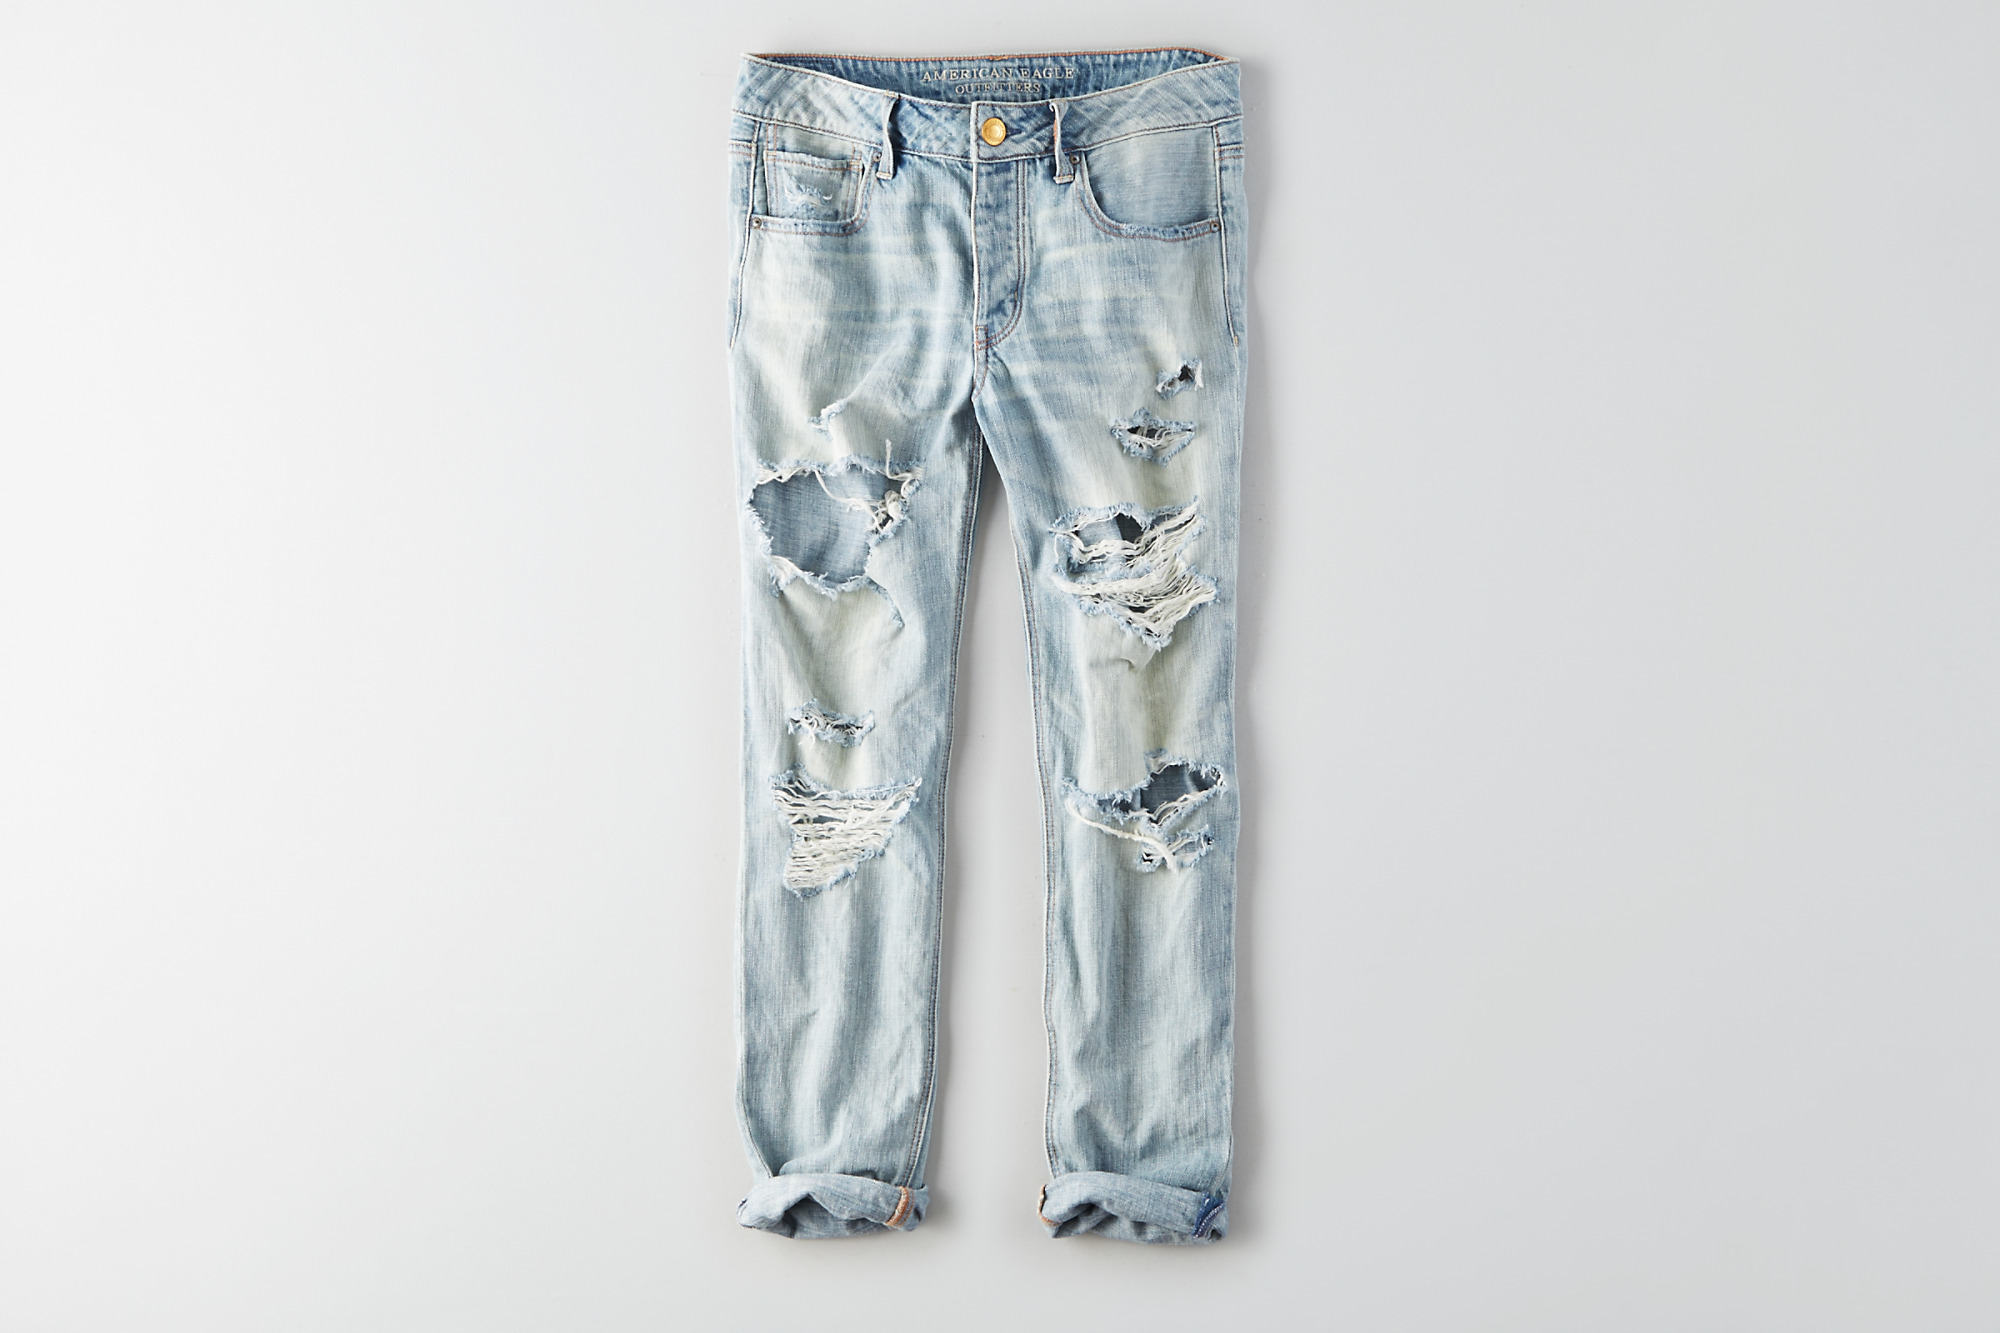 Jeans troués tomgirl american eagle